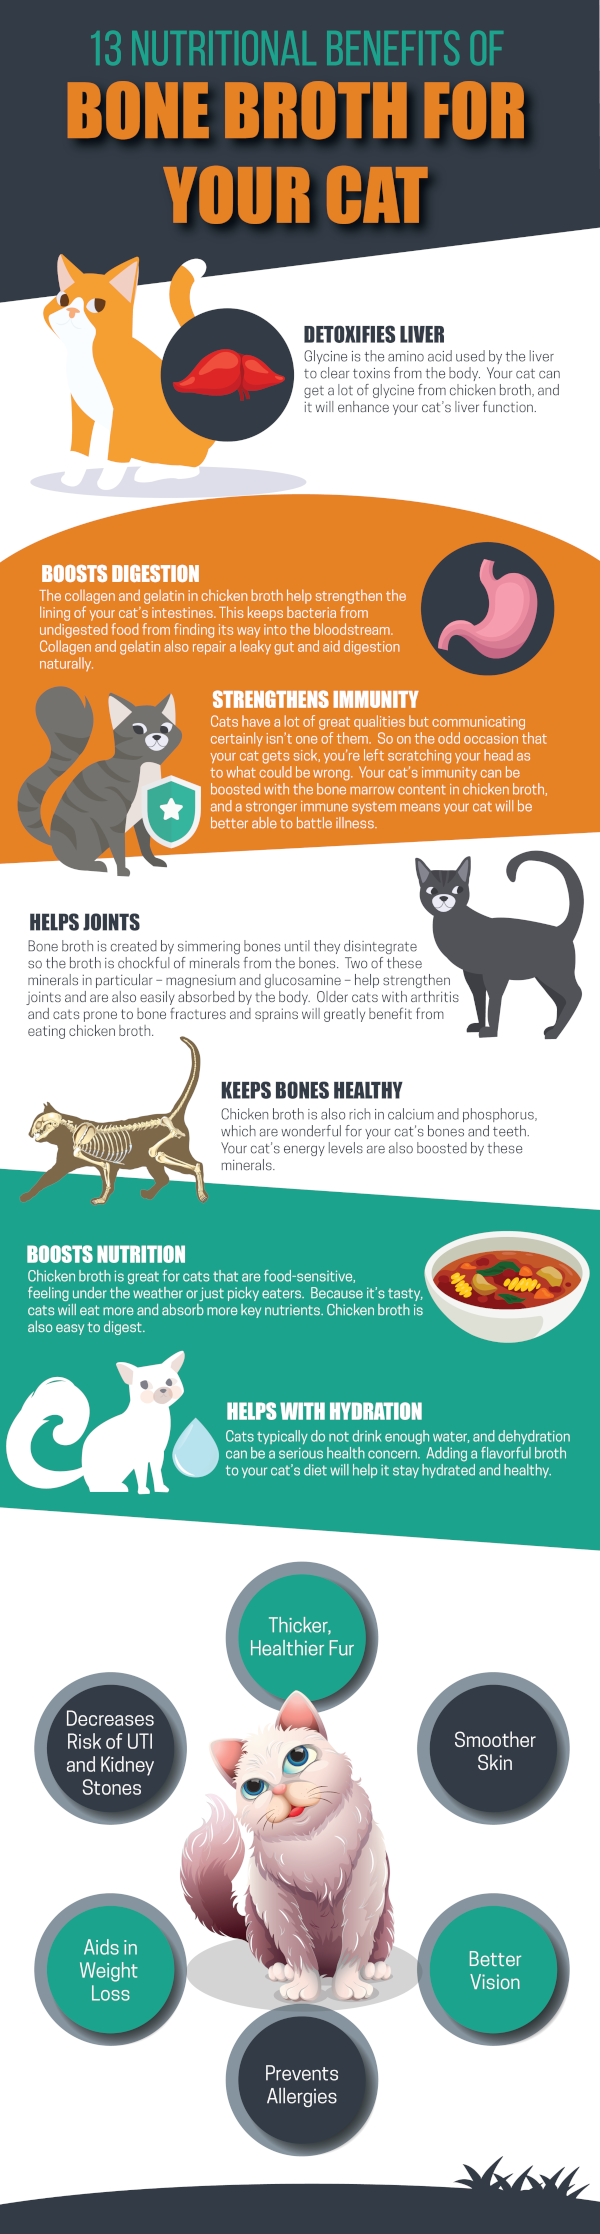 13 Nutritional Benefits Of Bone Broth For Your Cat